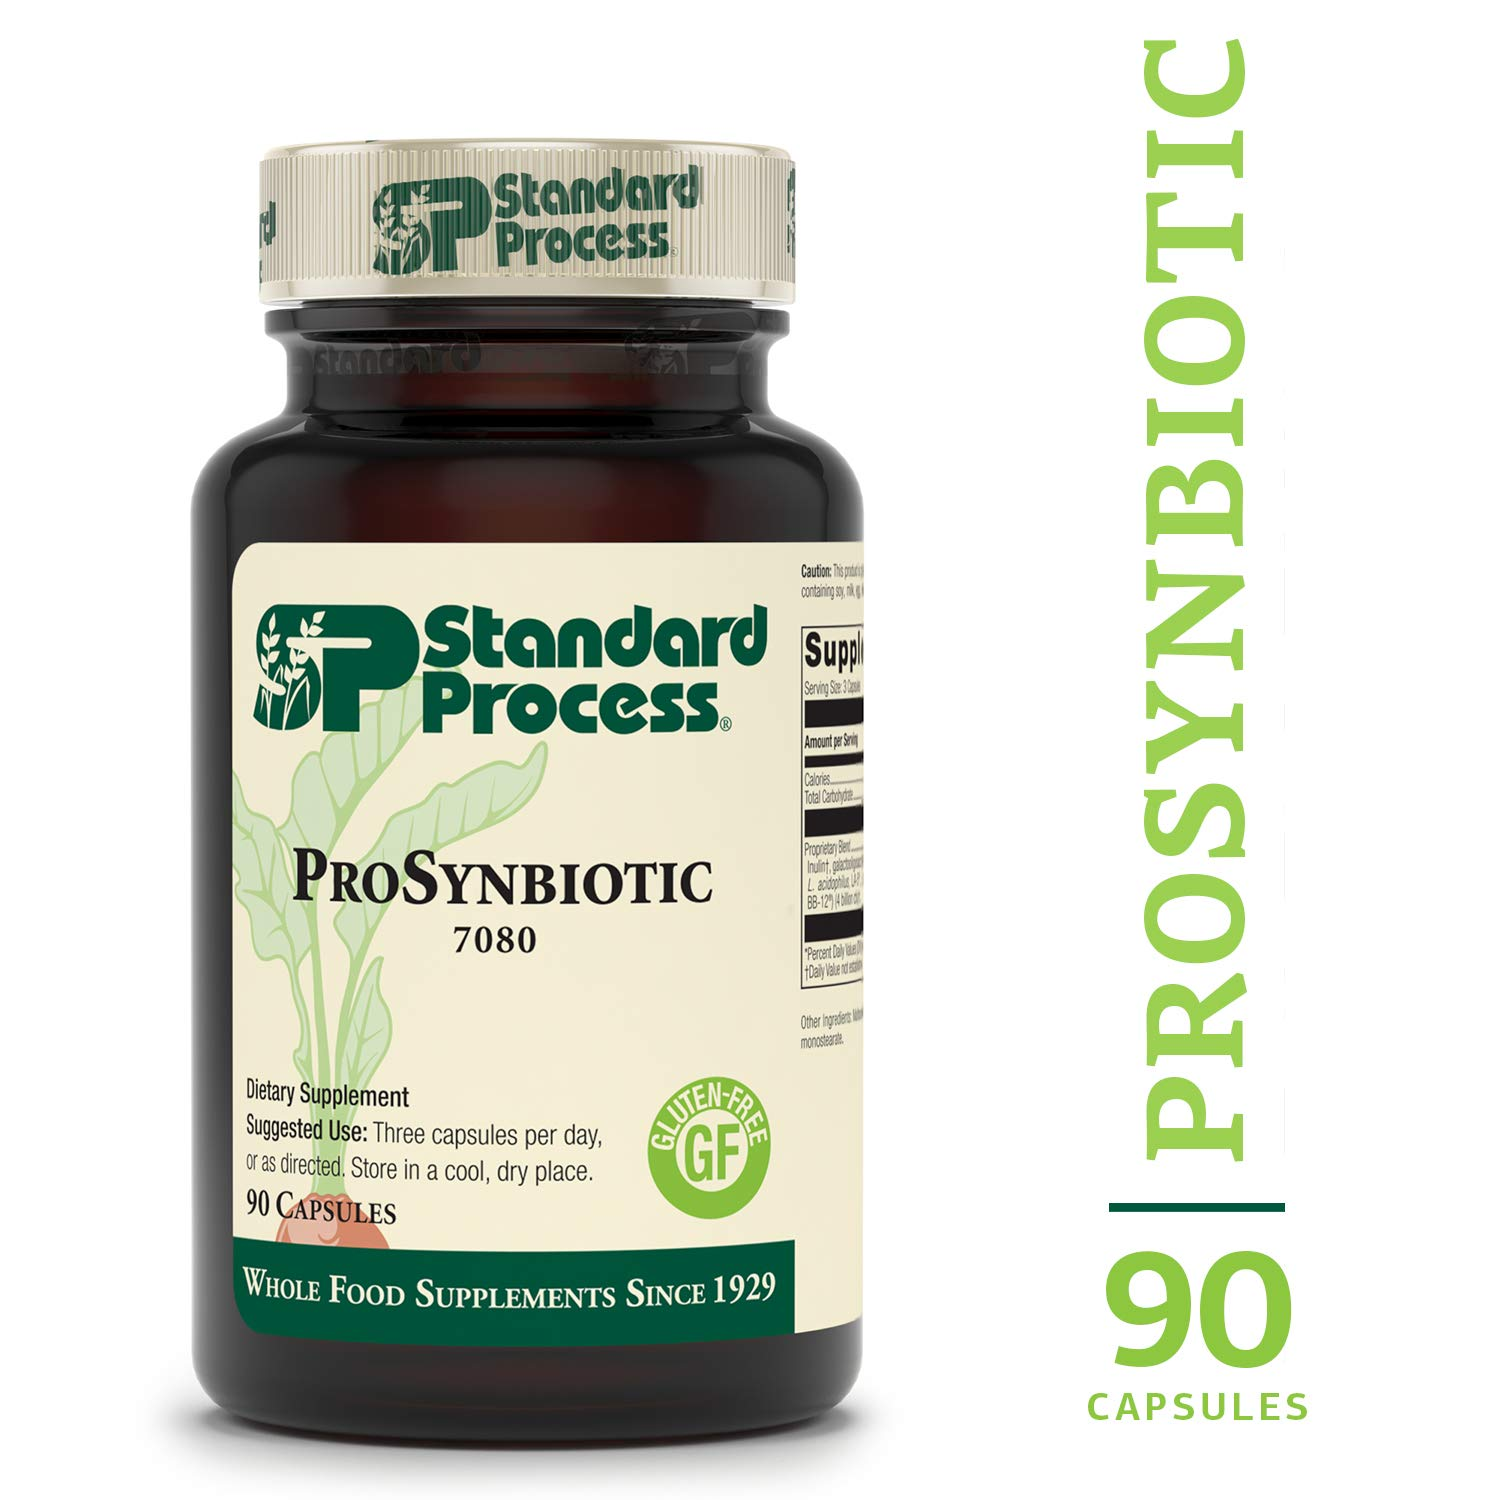 Standard Process - ProSynbiotic - Probiotic and Prebiotic Blend to Support Gut Flora and Overall Intestinal Health, Improves Nutrient Digestion, Gluten Free - 90 Capsules by Standard Process